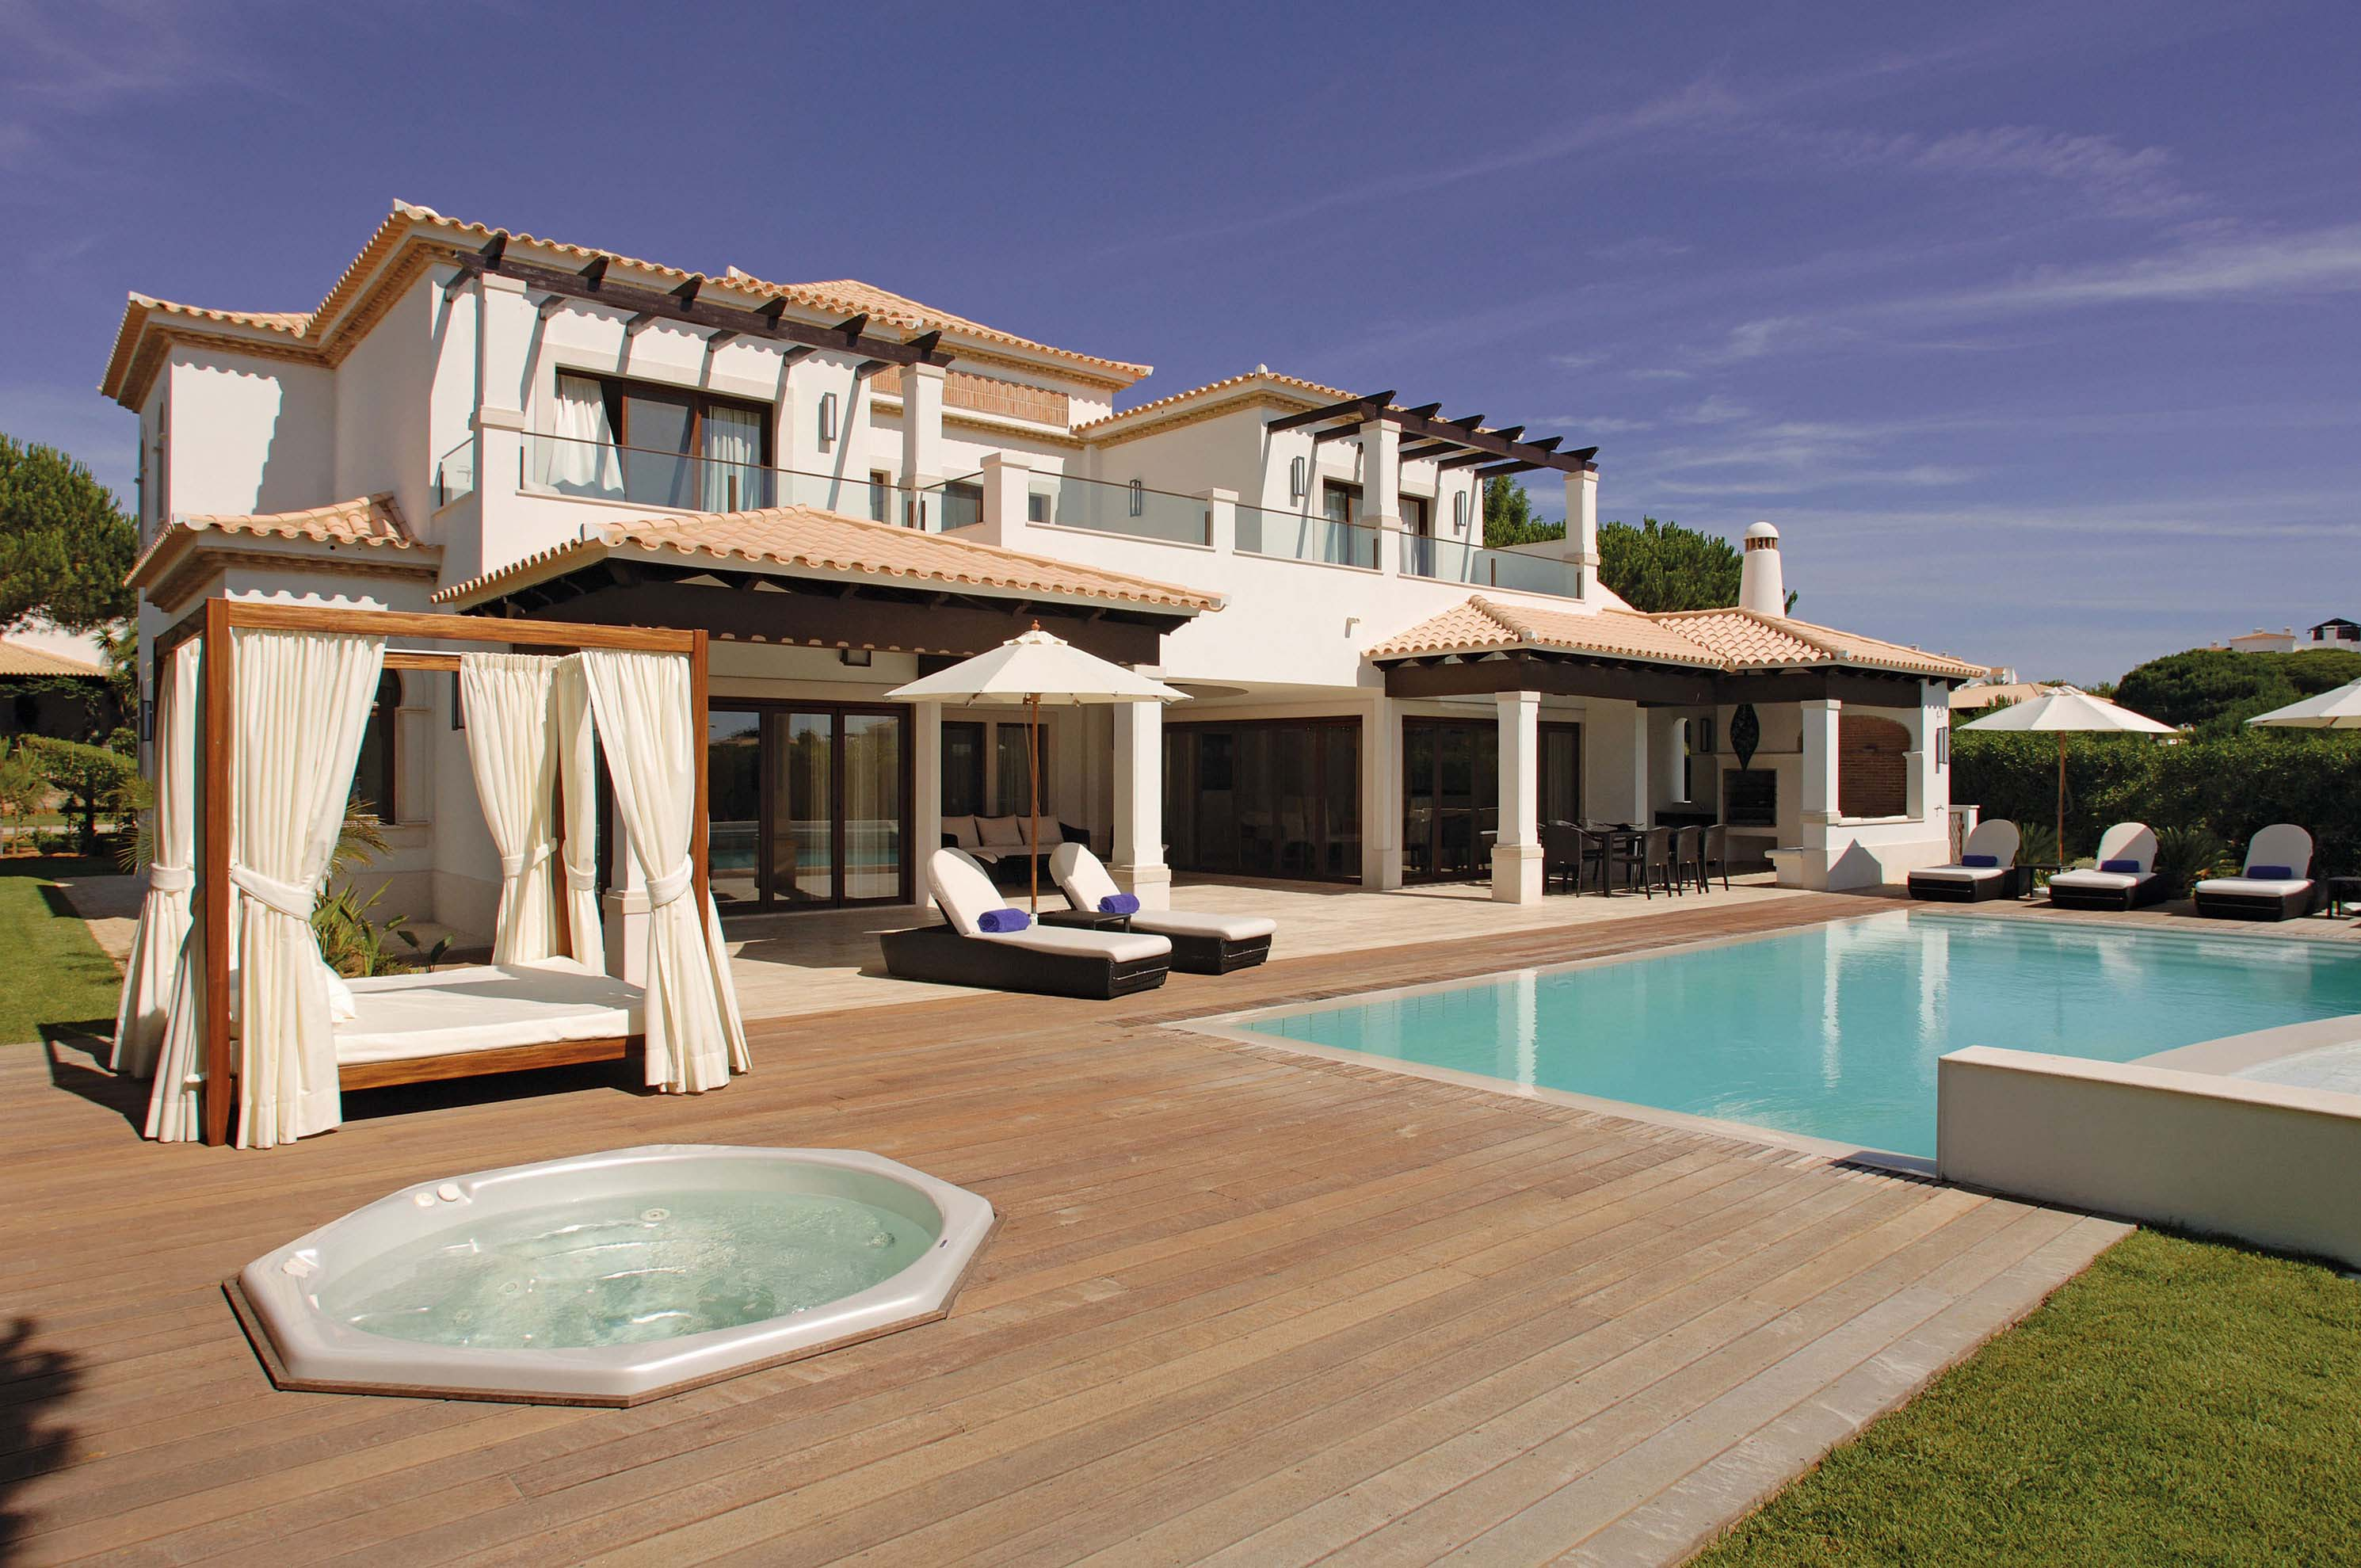 Private Villas Portugal With Pool Family Resort Villas - Apartment Portugal